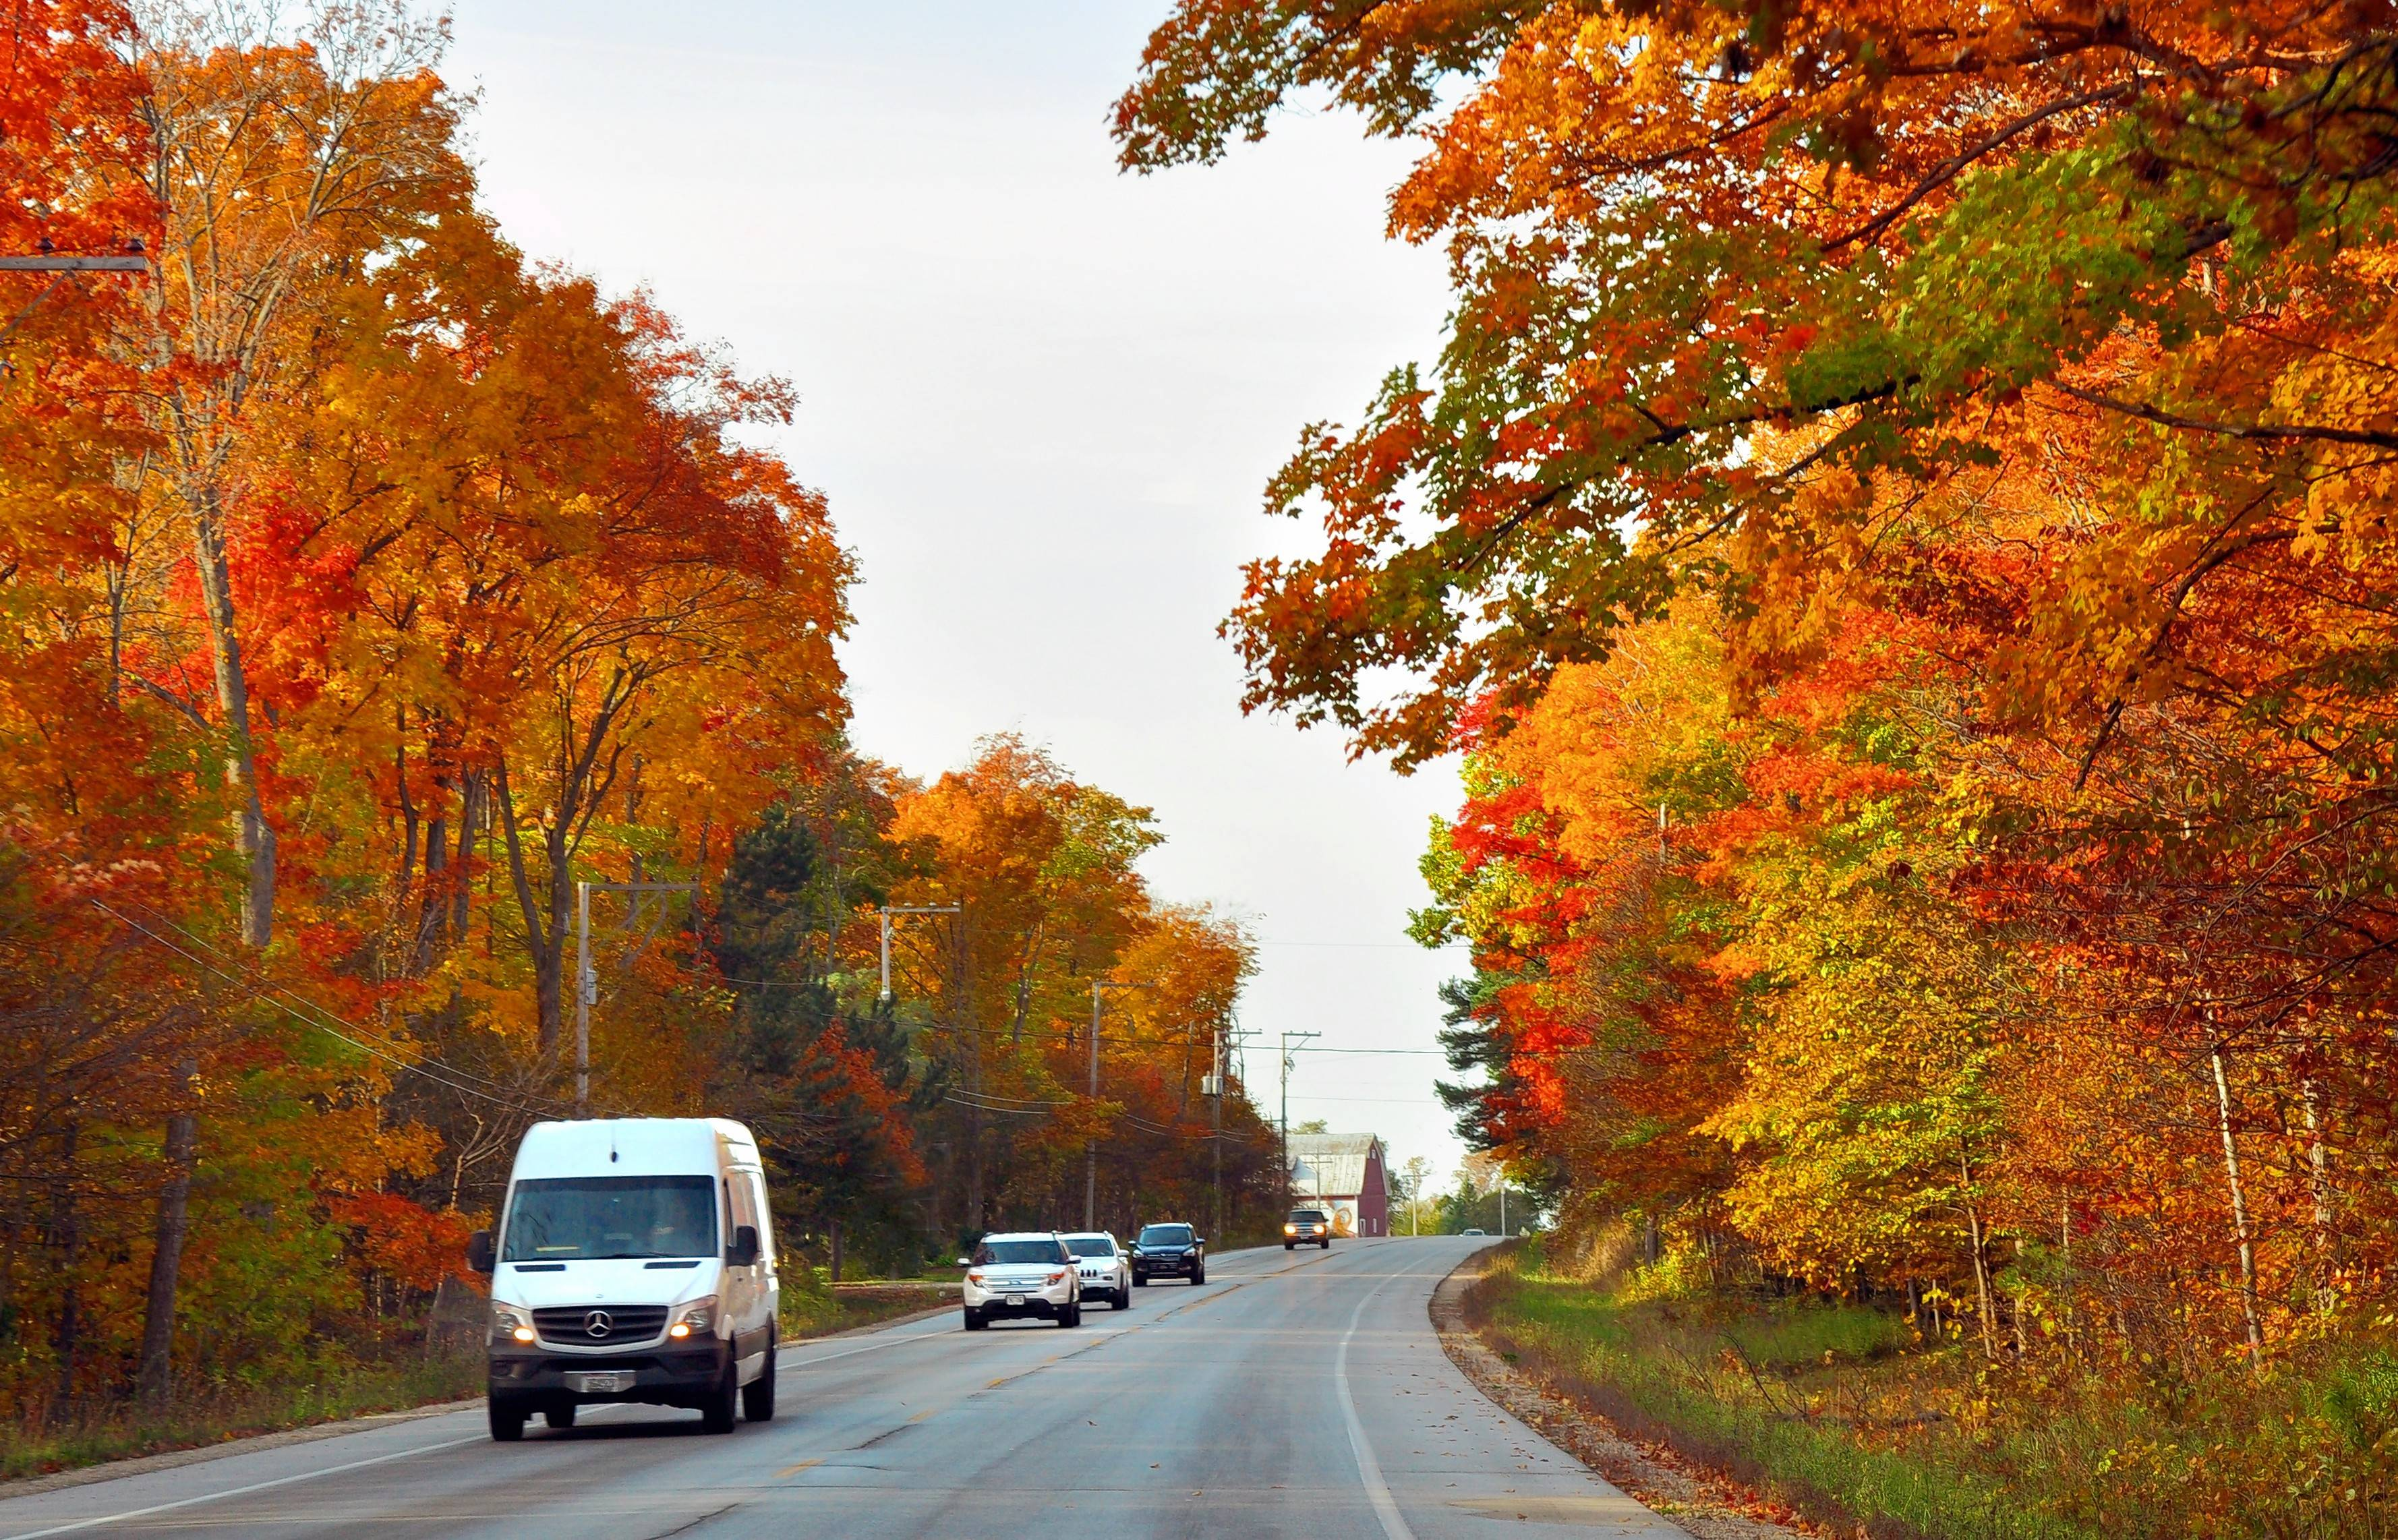 Brilliant fall foliage lines roads in Door County Wis. in October. & Fall foliage lights up Wisconsin\u0027s Door County